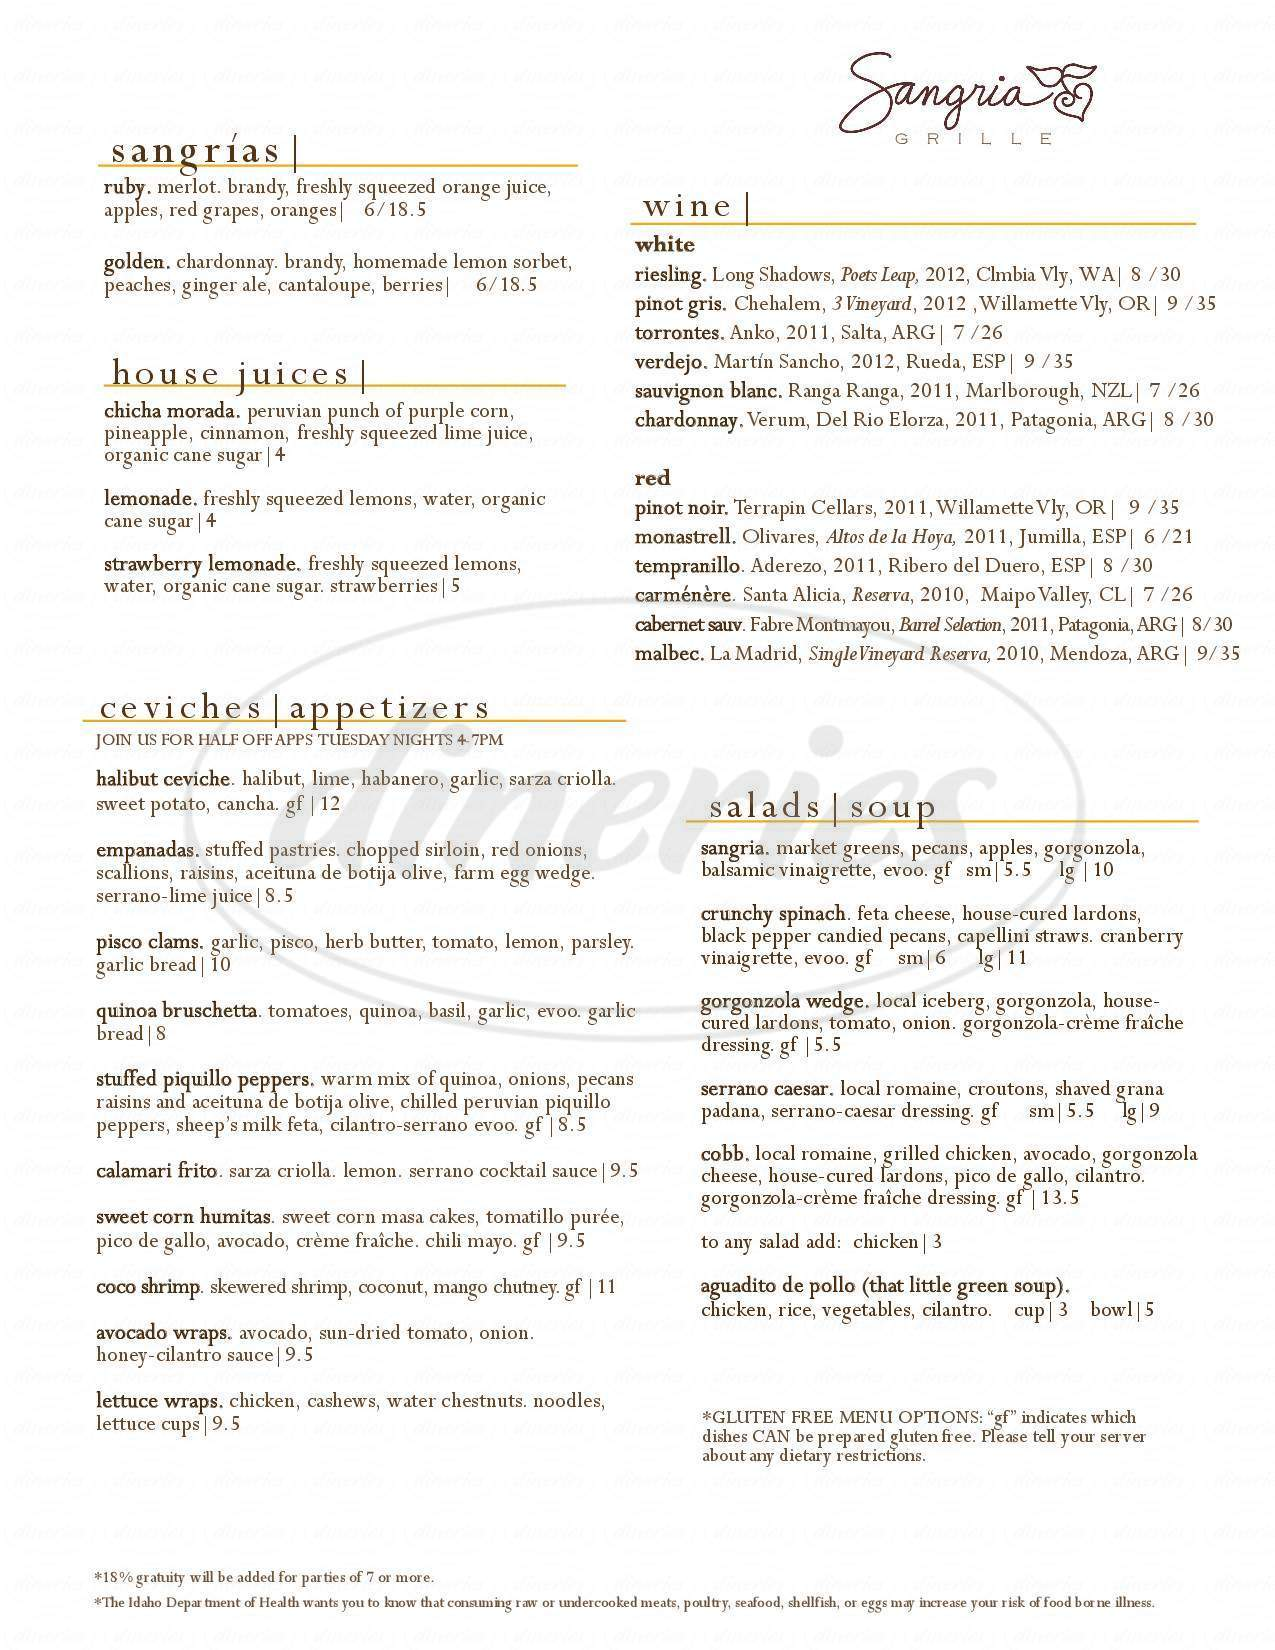 menu for Sangria Grille